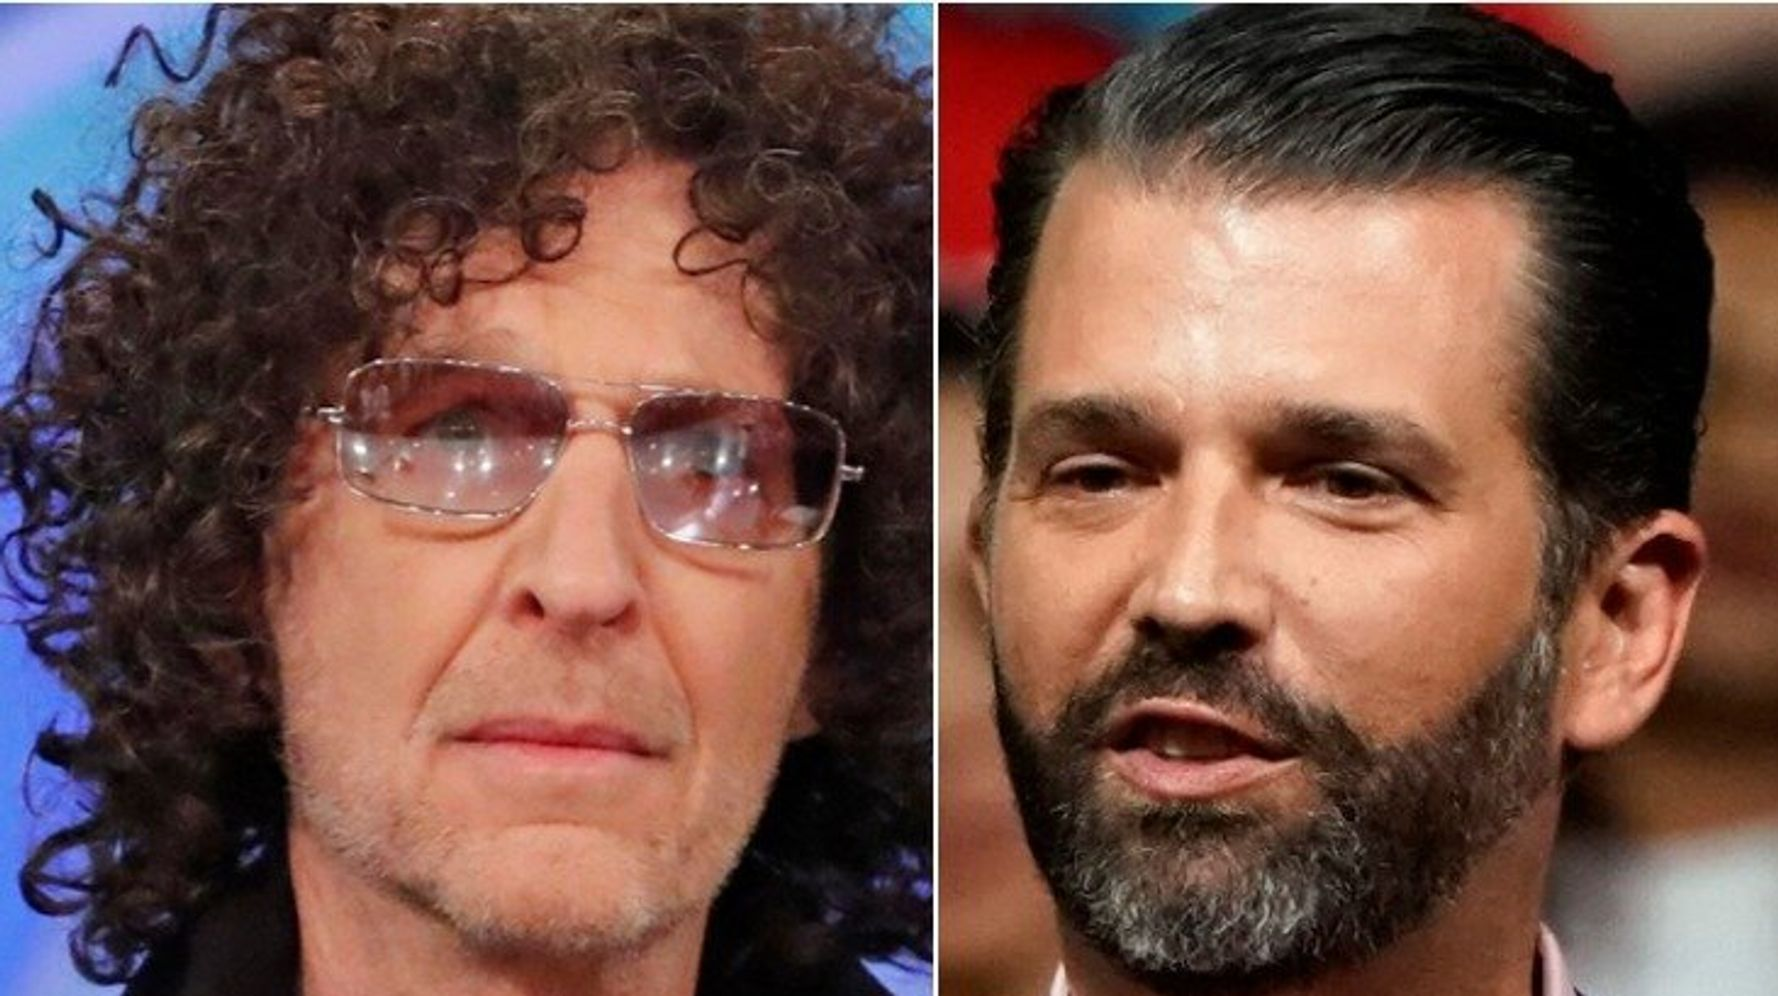 Howard Stern Taunts 'Genius' Donald Trump Jr. With Sarcastic Over-The-Top Praise